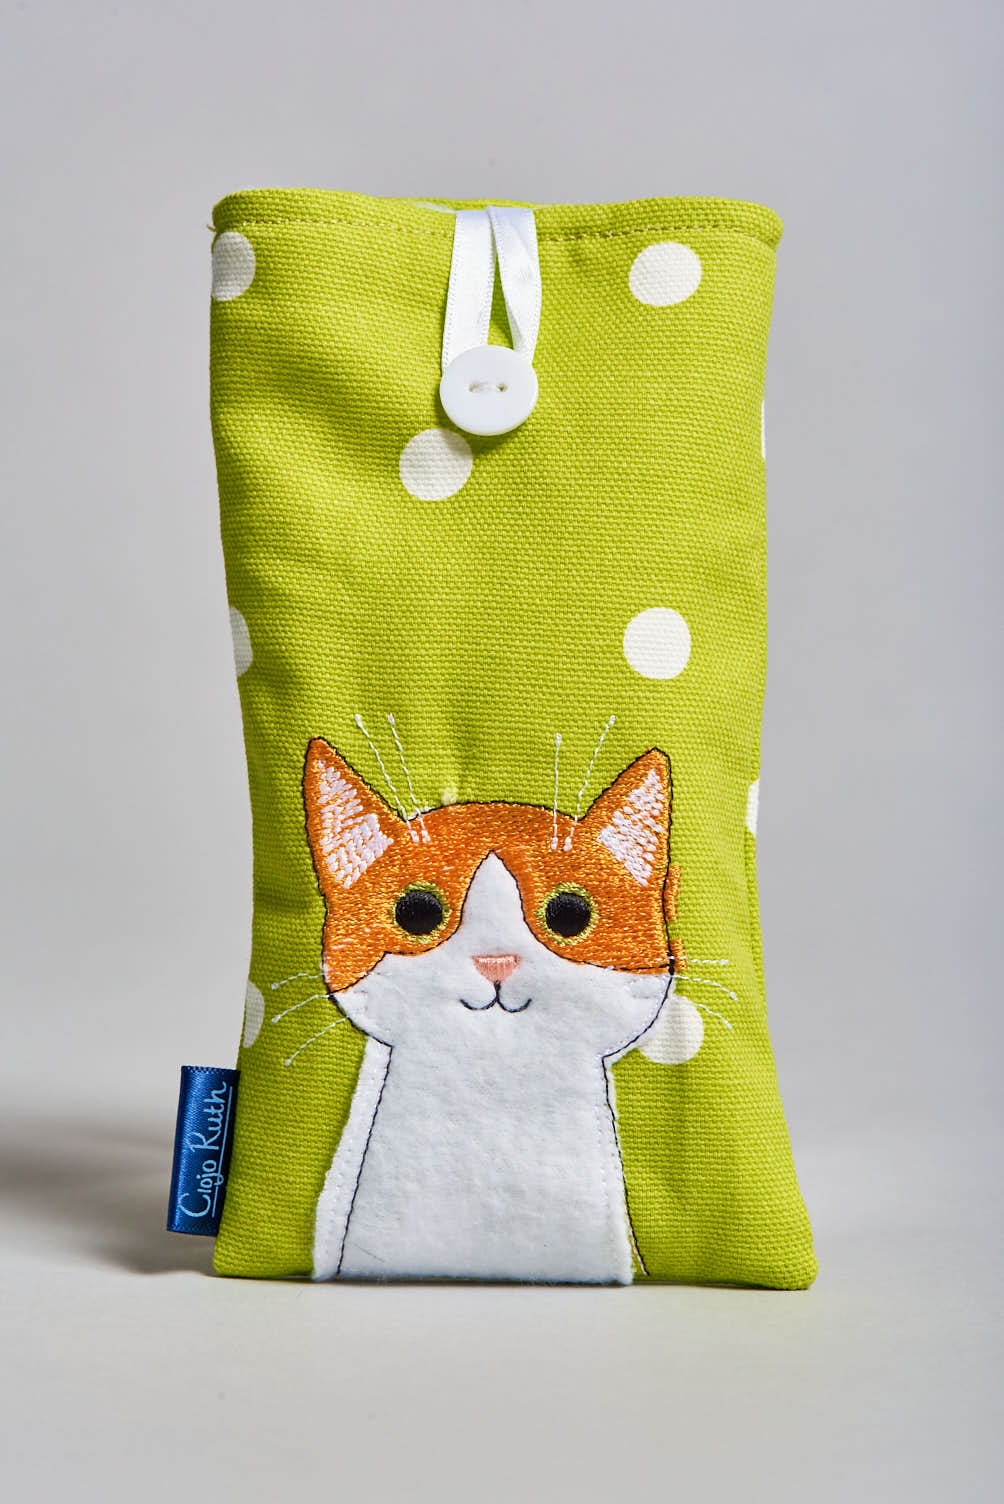 Clojo Eyeglass Case - Ginger Cat